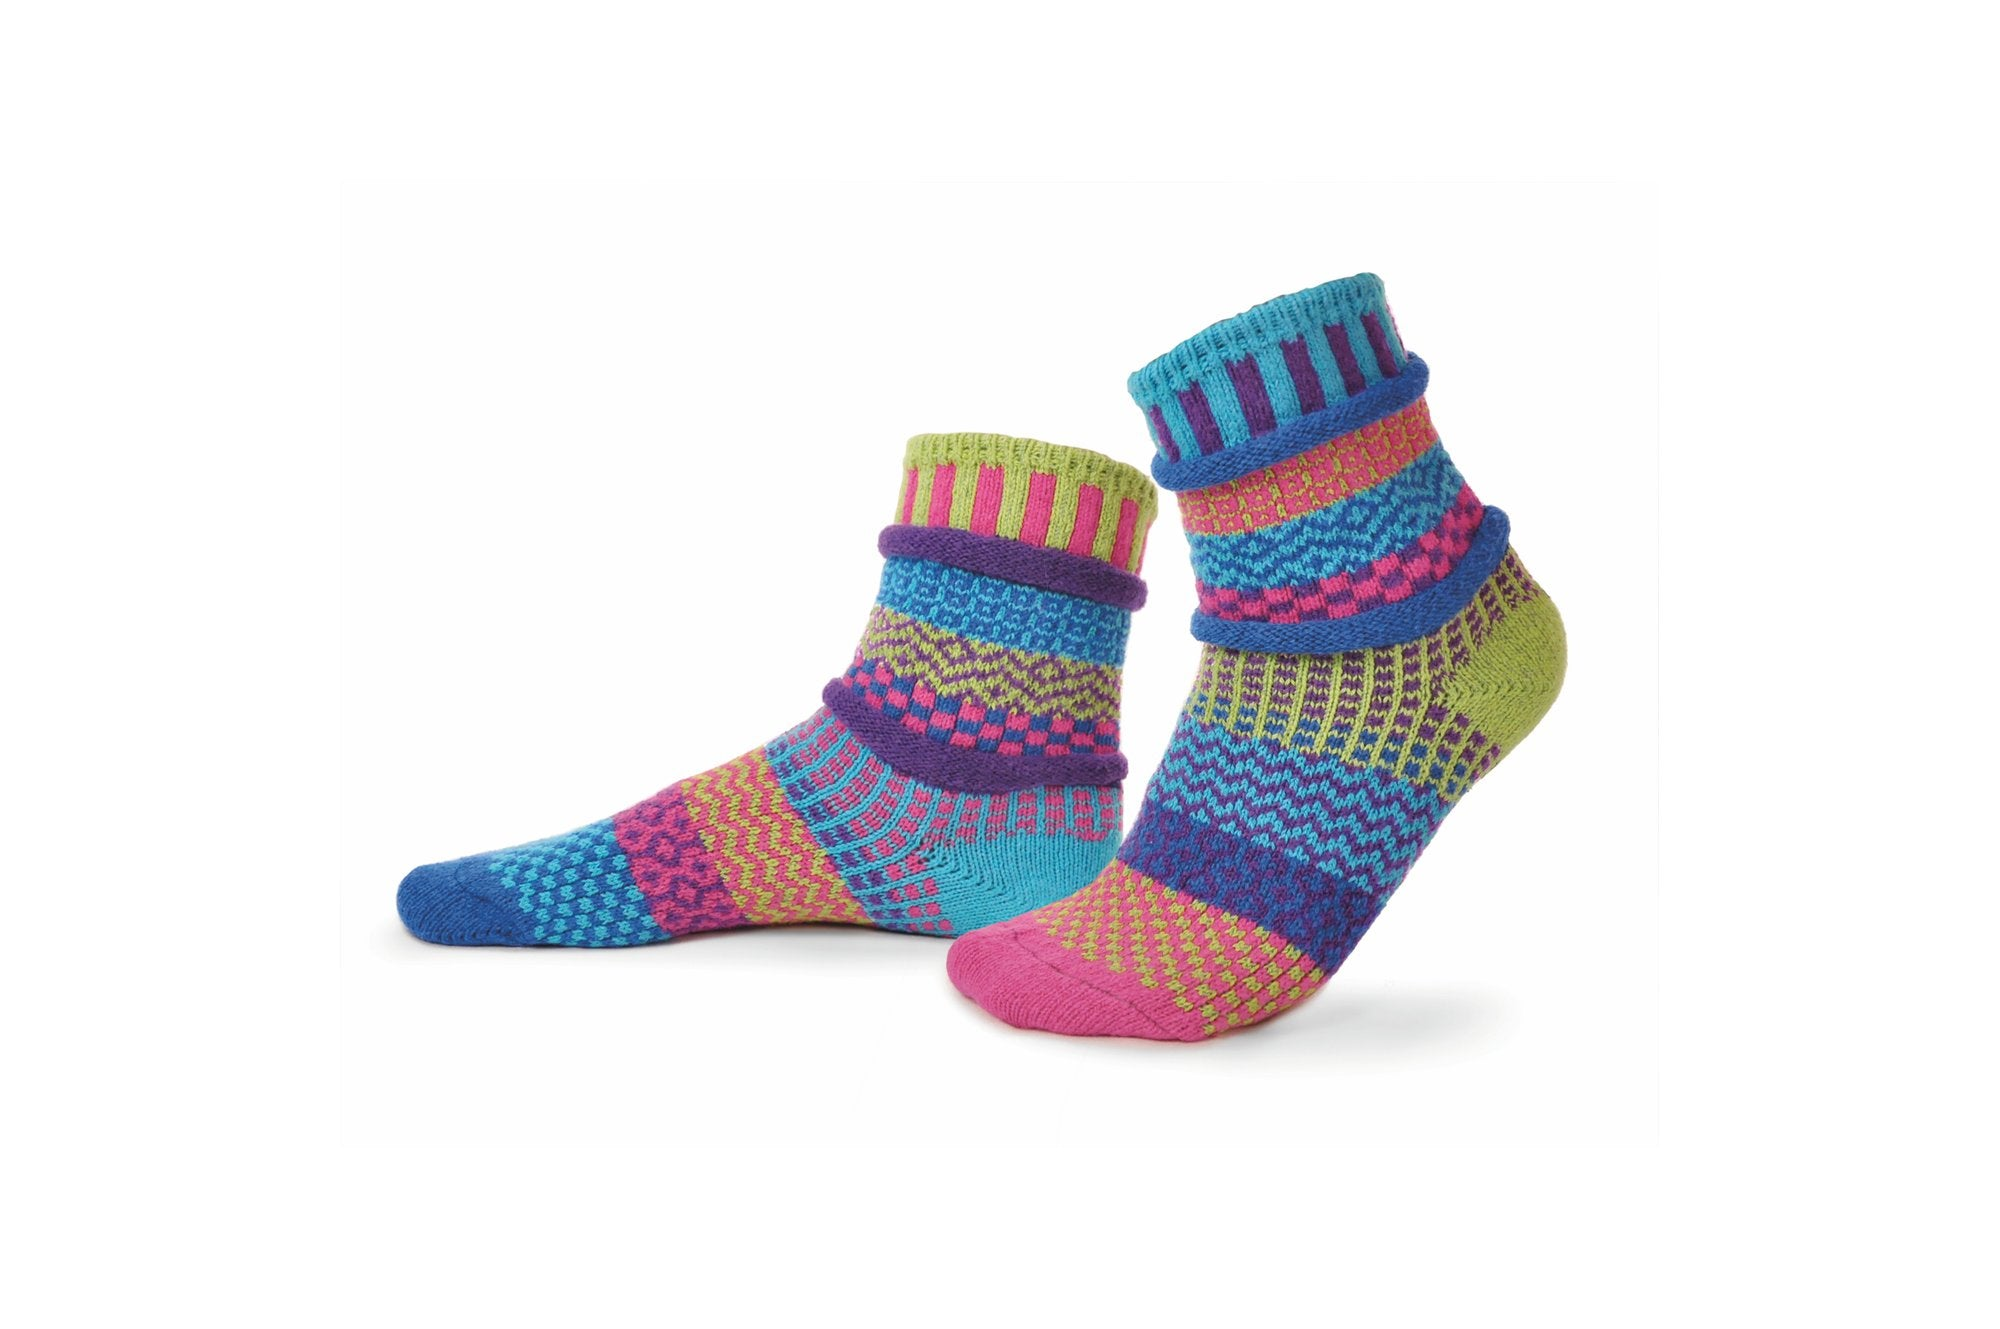 Bluebell Crew Socks by Solmate Socks